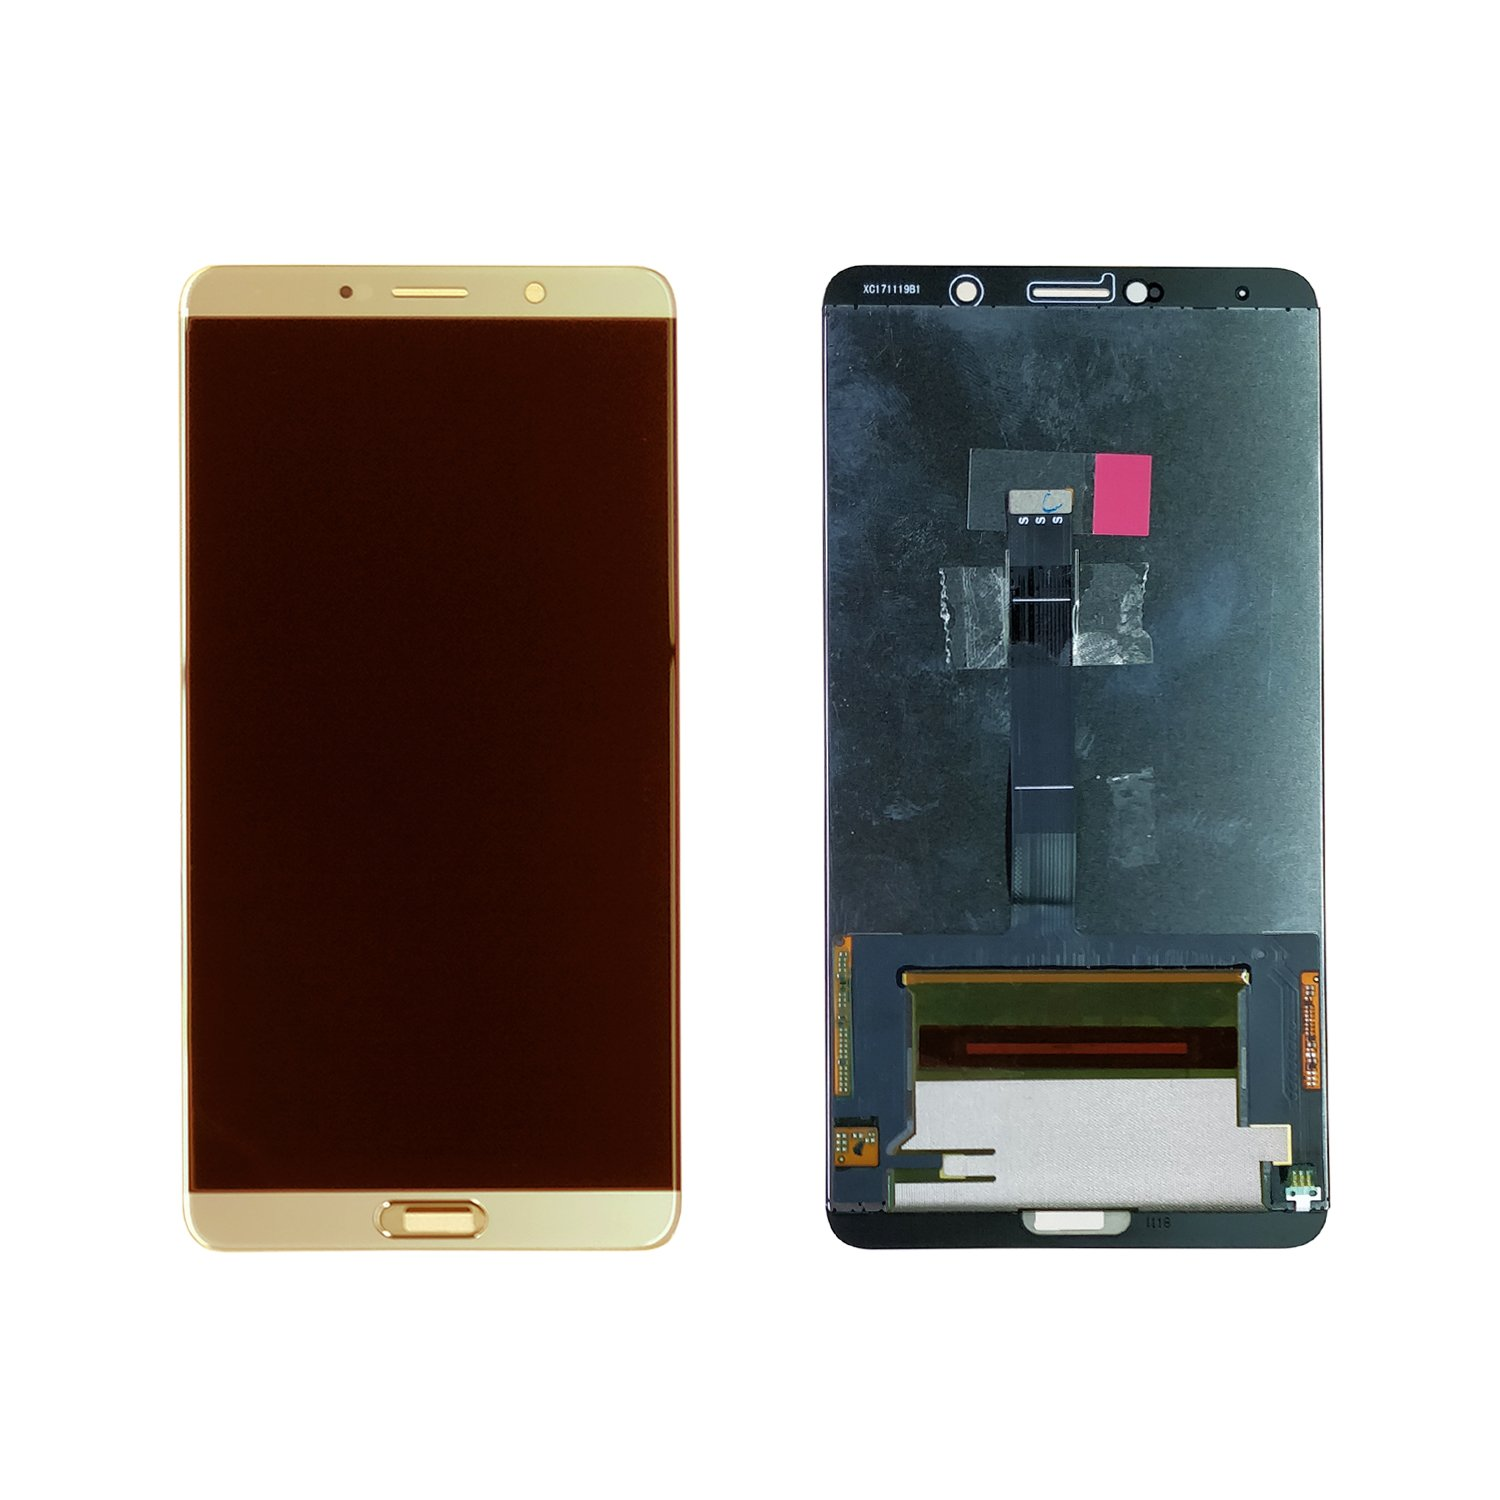 Swark 5.9'' IPS LCD Display Touch Digitizer Screen Glass Replacement for Huawei Mate 10 L09 L29 AL00 (Champagne Gold)